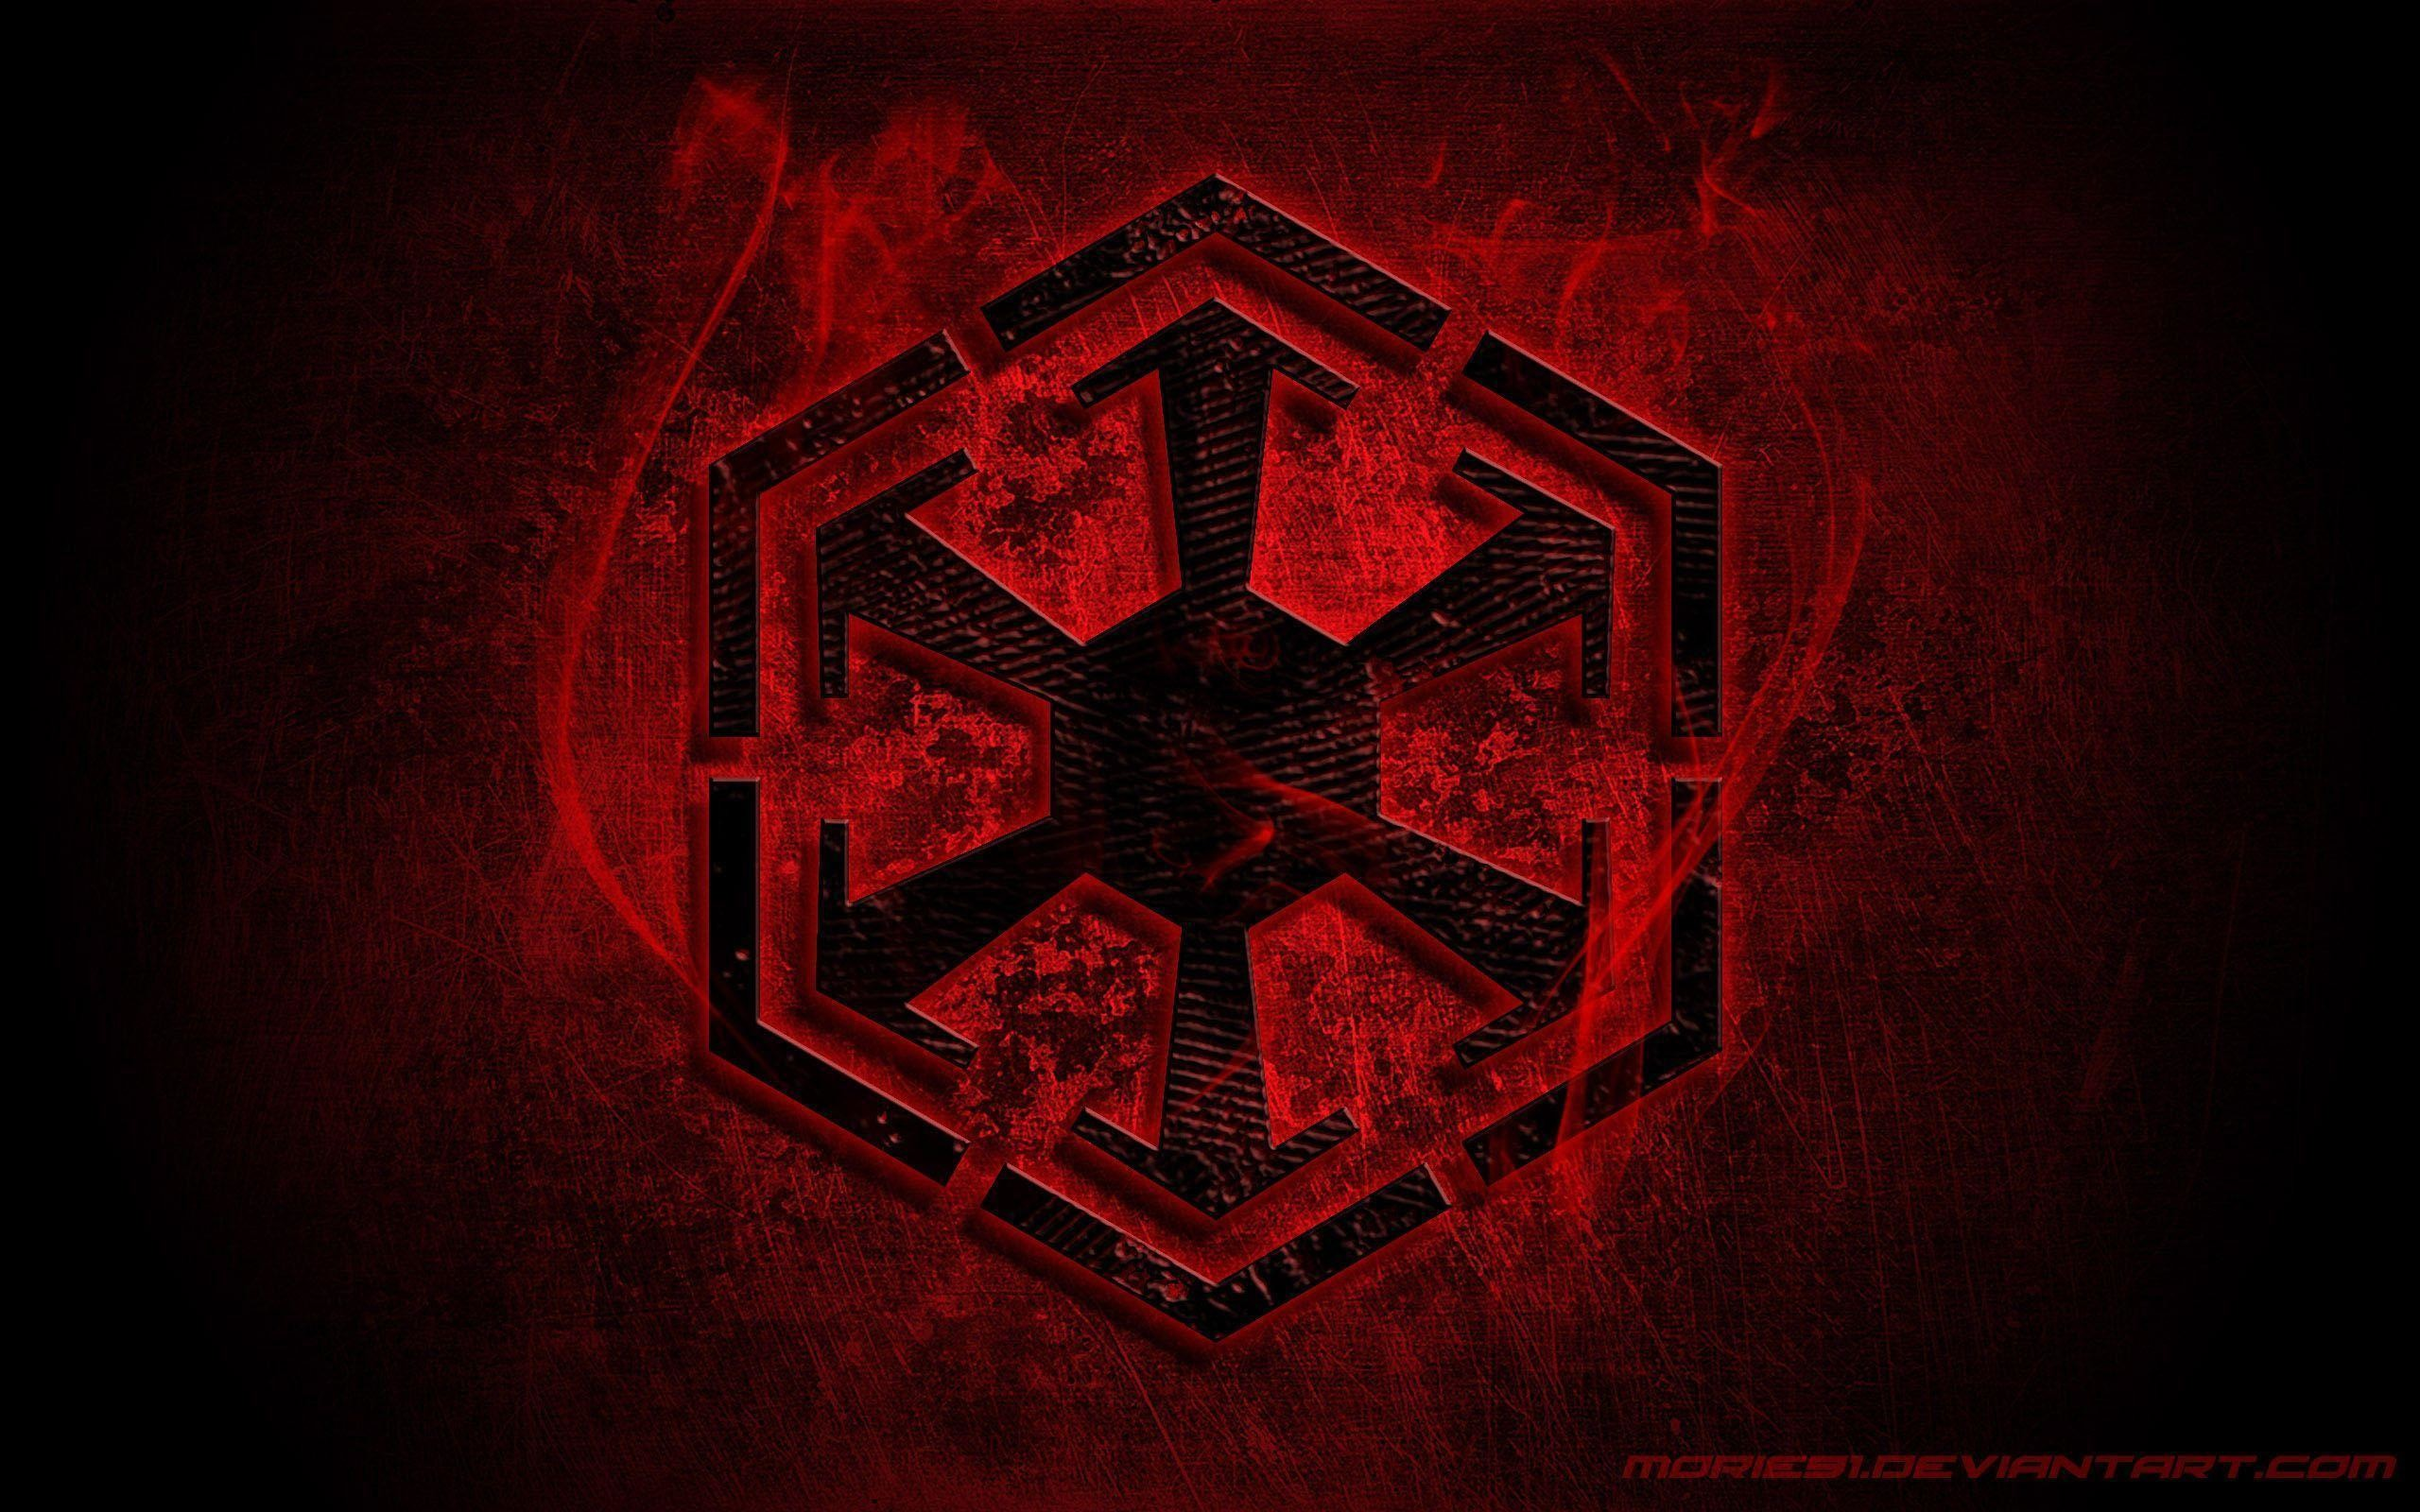 2560x1600 Star Wars: The Old Republic Empire Logo wallpaper